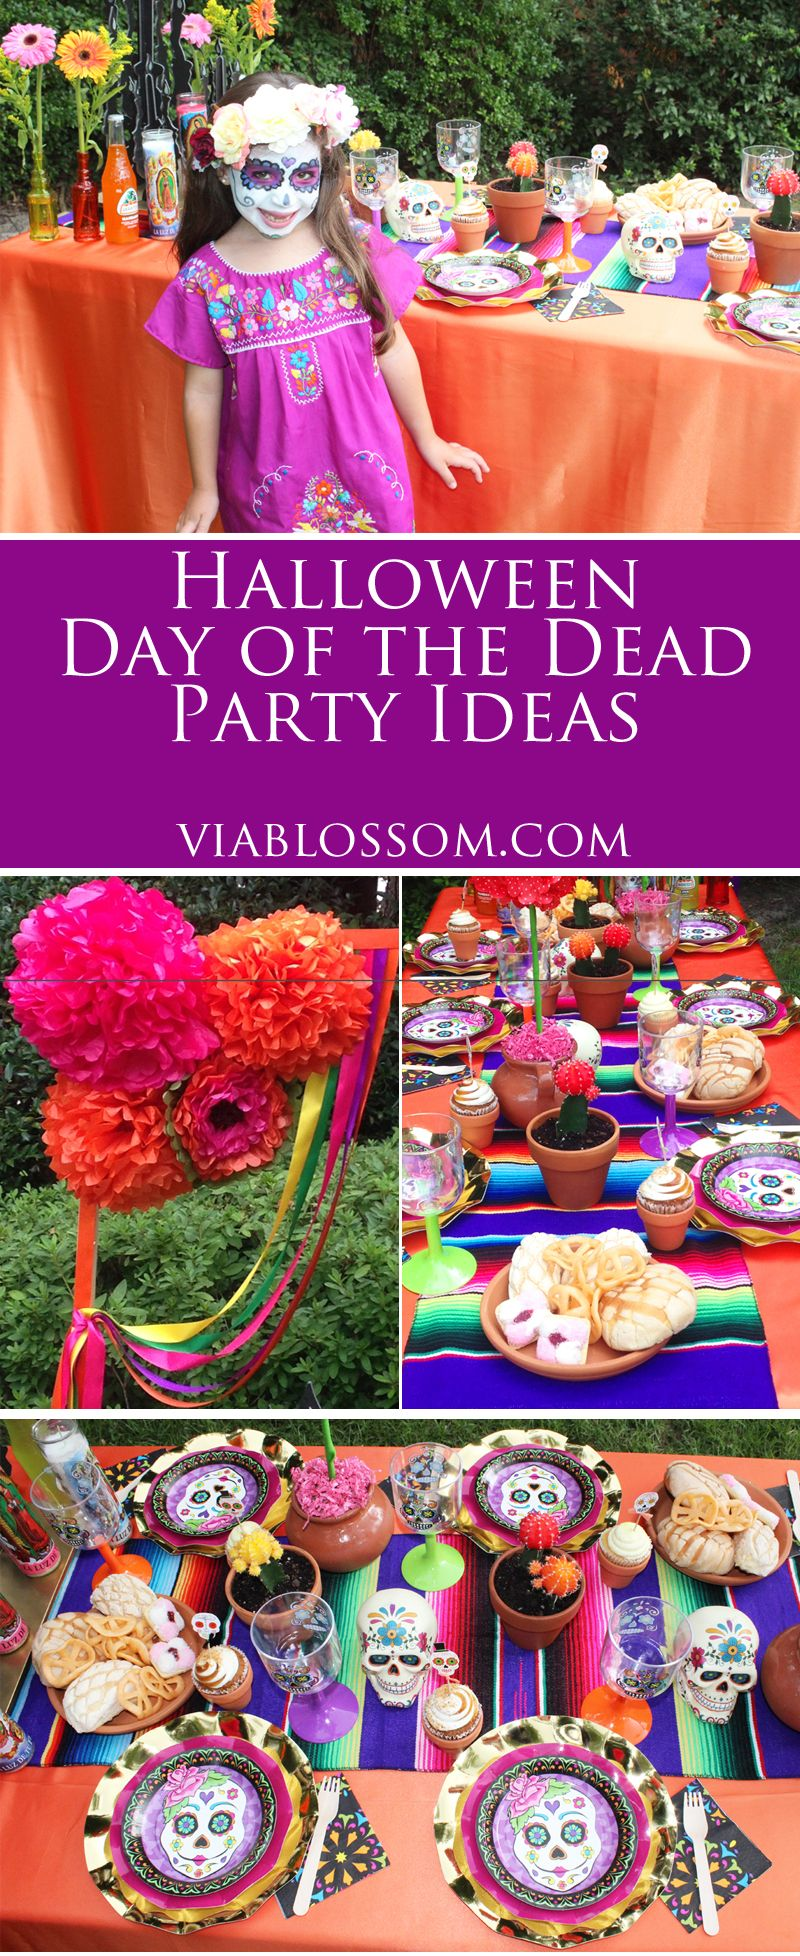 day of the dead party ideas and decorations on the via blossom blog just in